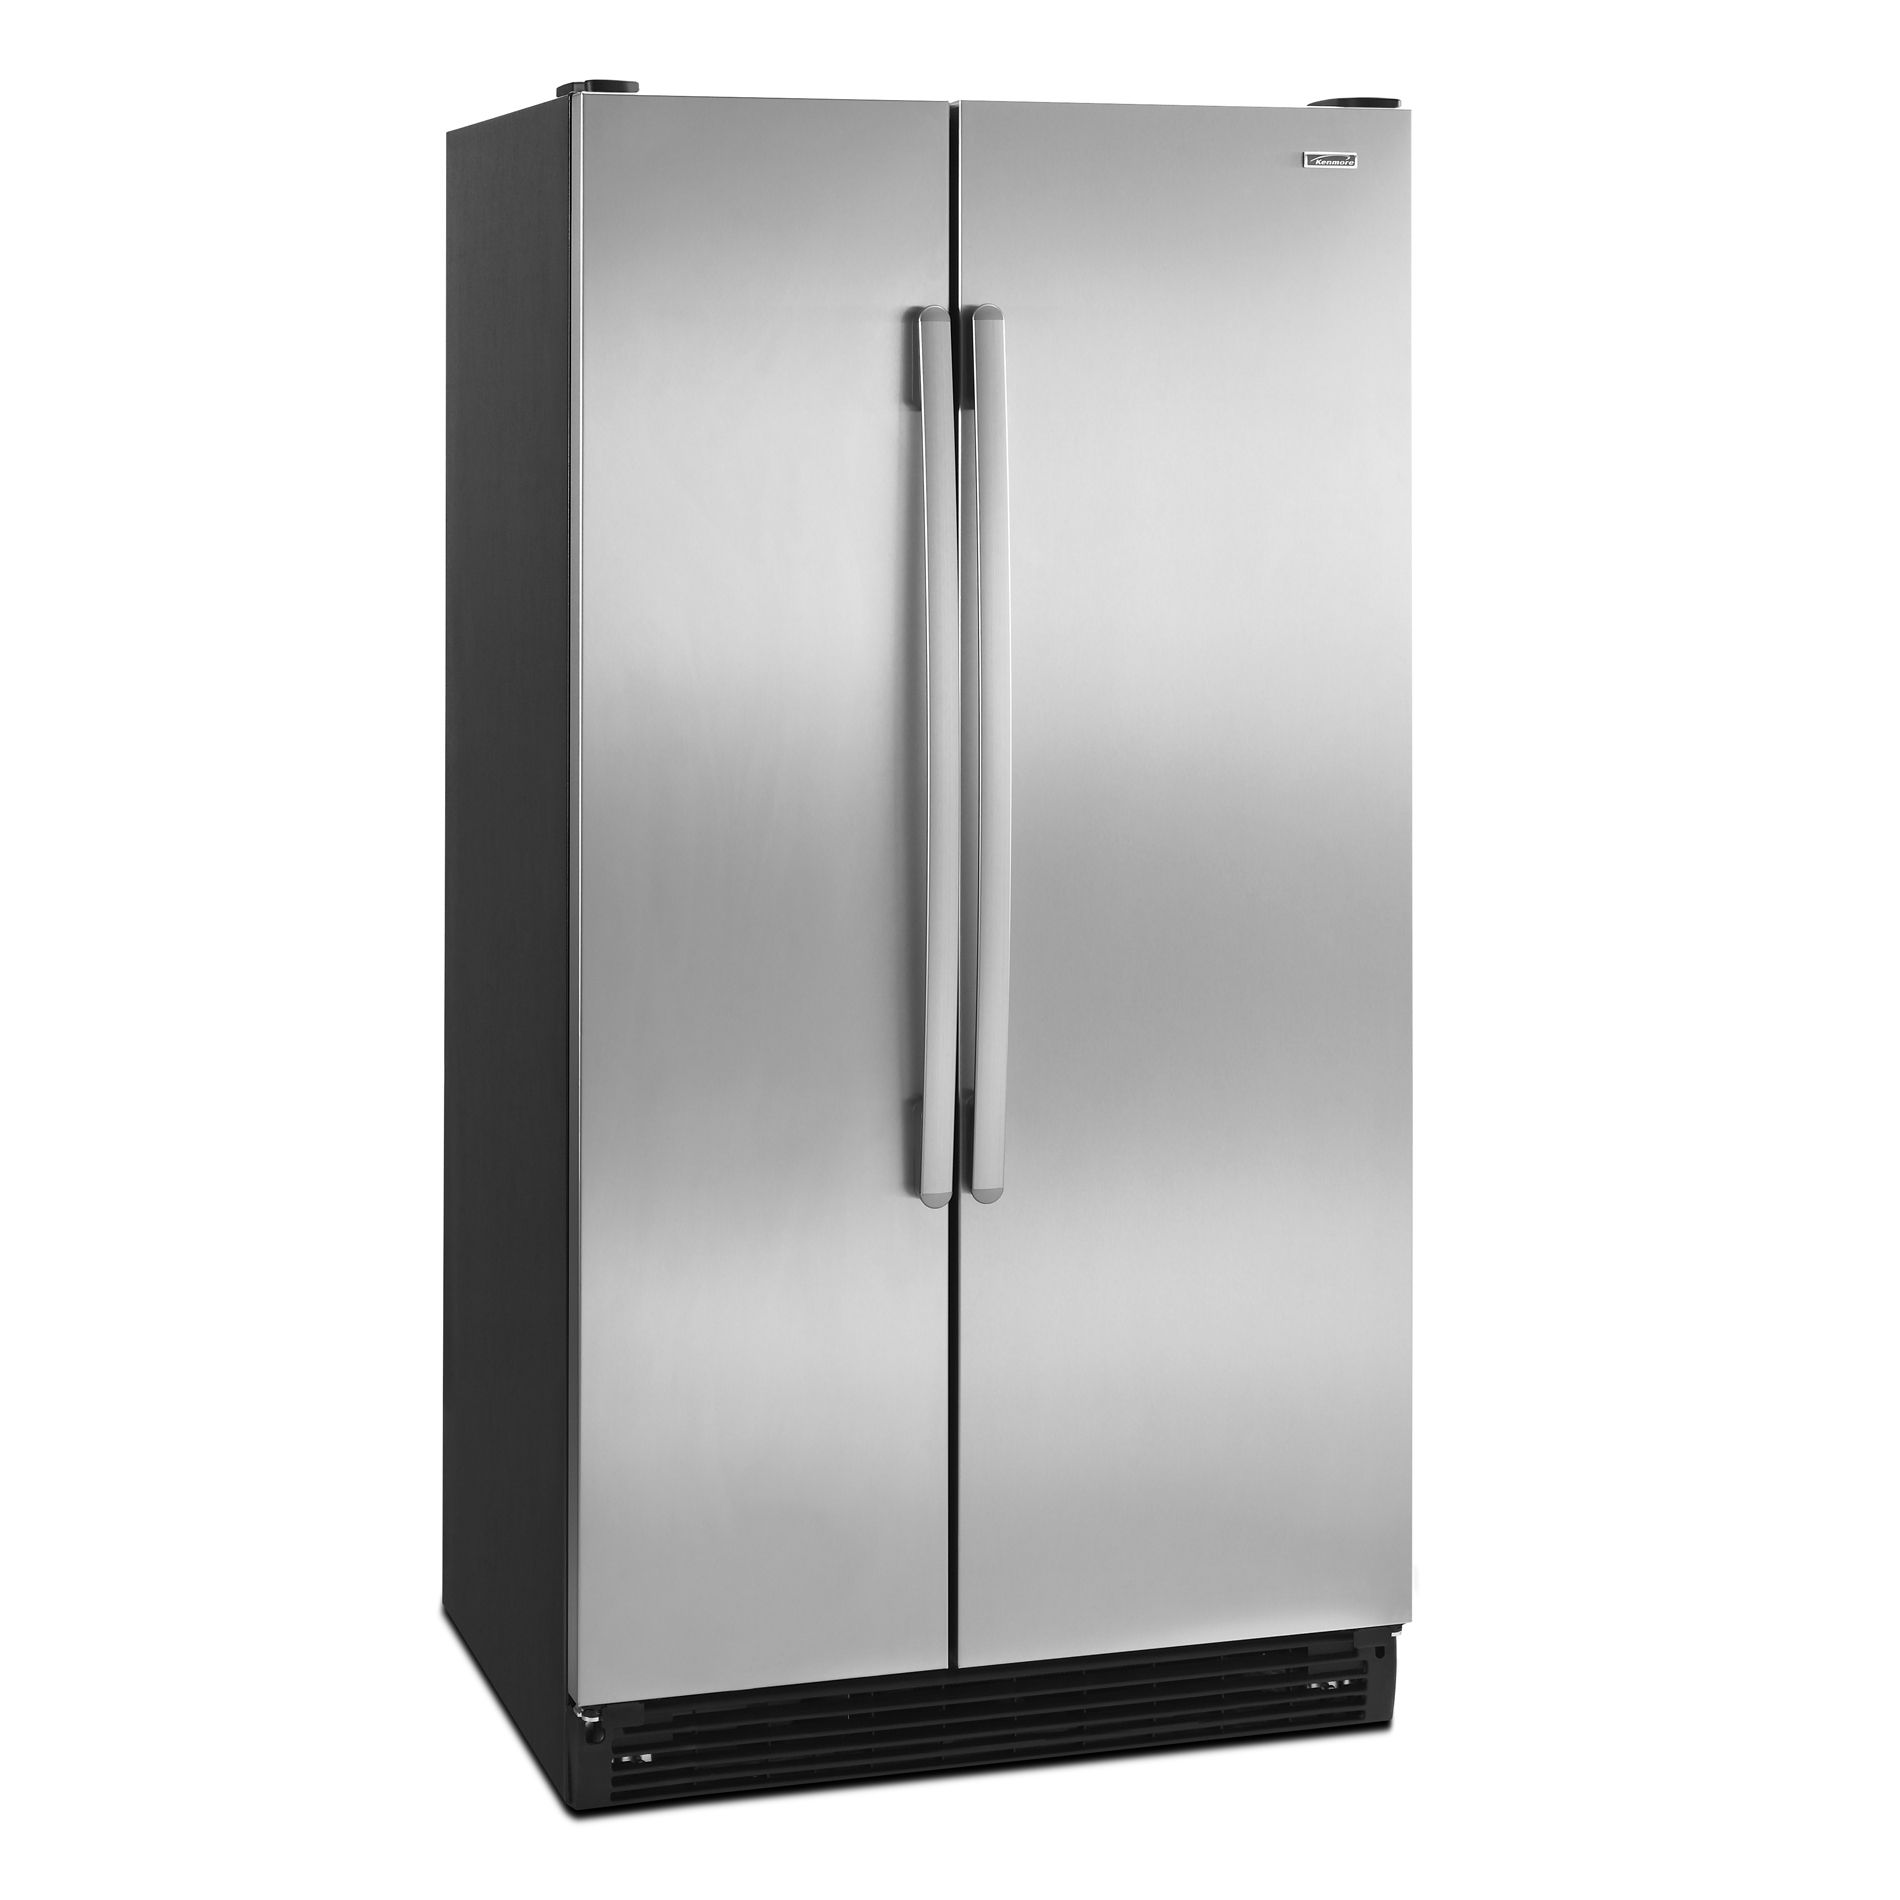 Kenmore 25.0 cu. ft. Non-Dispensing Side-By-Side Refrigerator